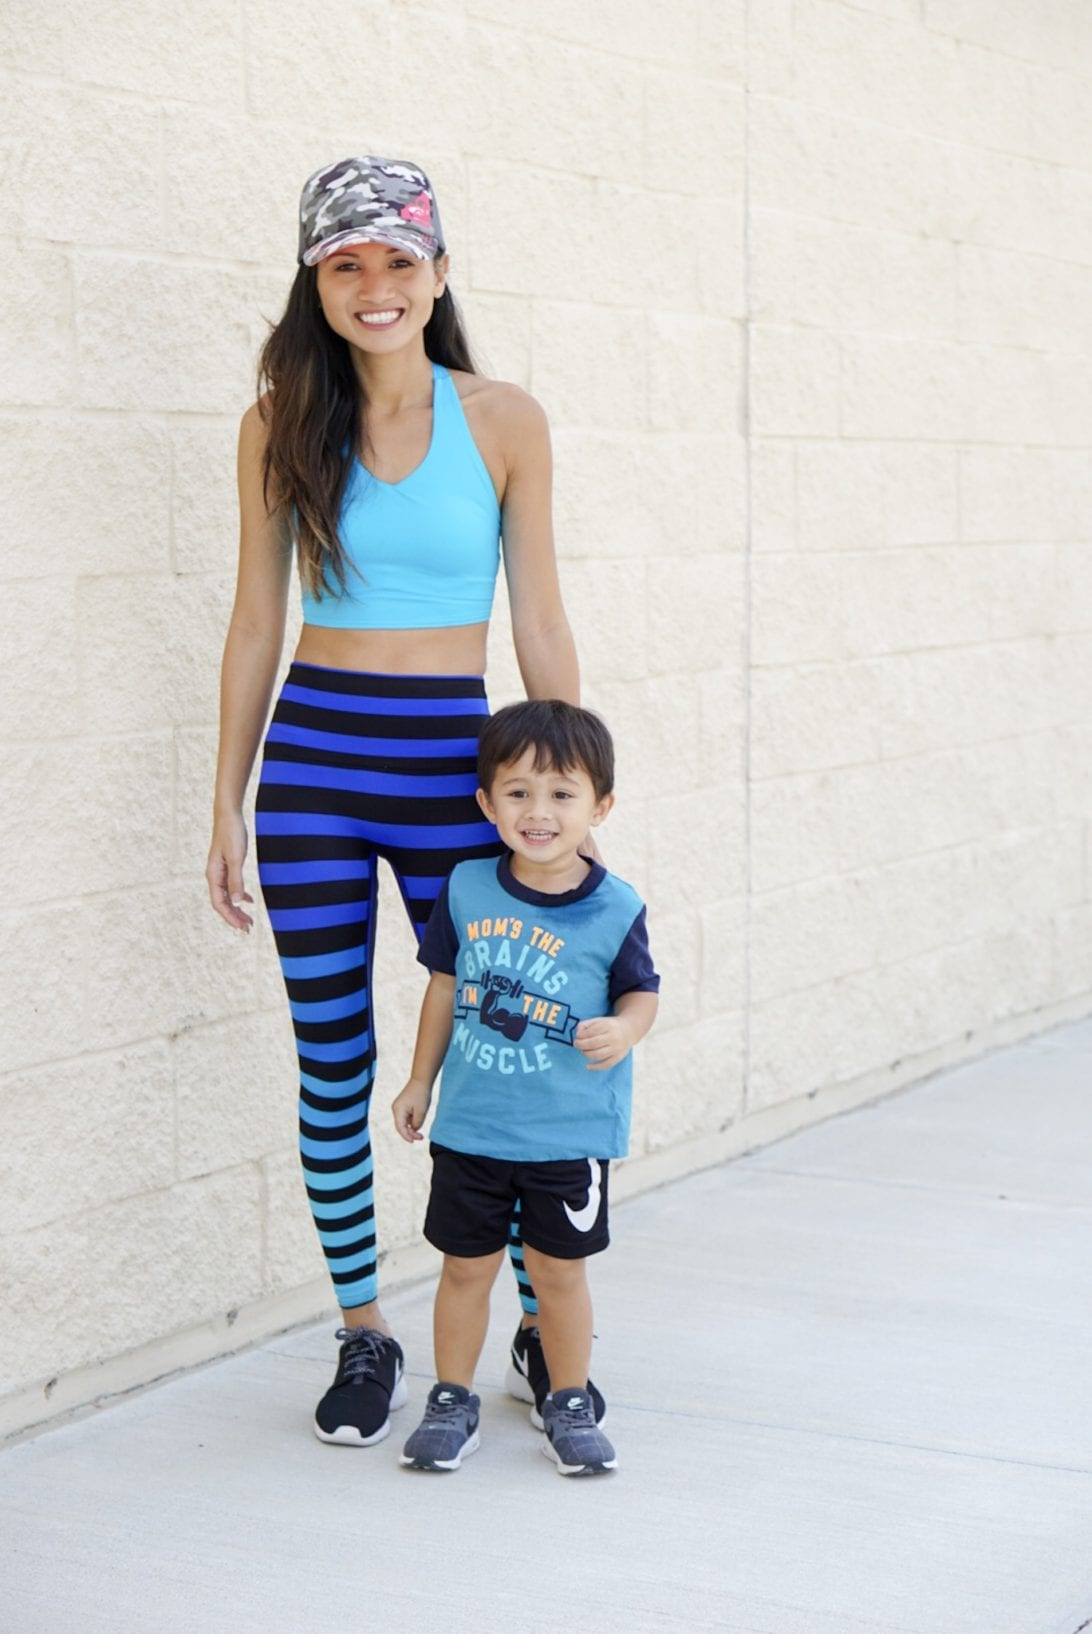 cardio routine, working out with your toddler, workout outfit, exercise outfit, mommy and me workout, k-deer leggings, fitness gear, fitness style, fitness fashion, mommy and me style, mommy and son style